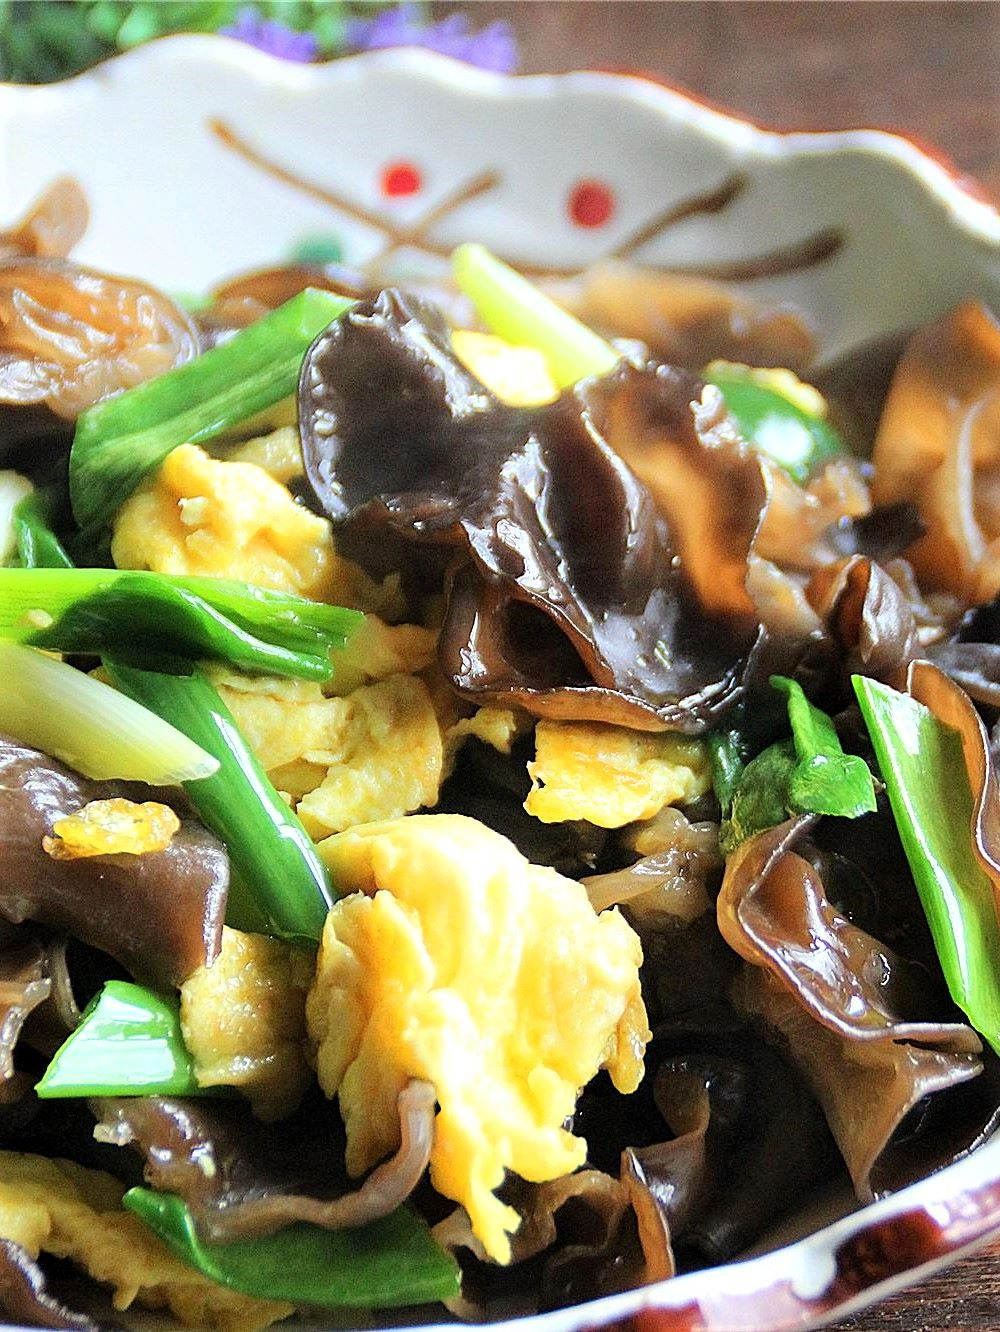 Scrambled Eggs with Black Fungus and green onion recipe for black fungus 2020